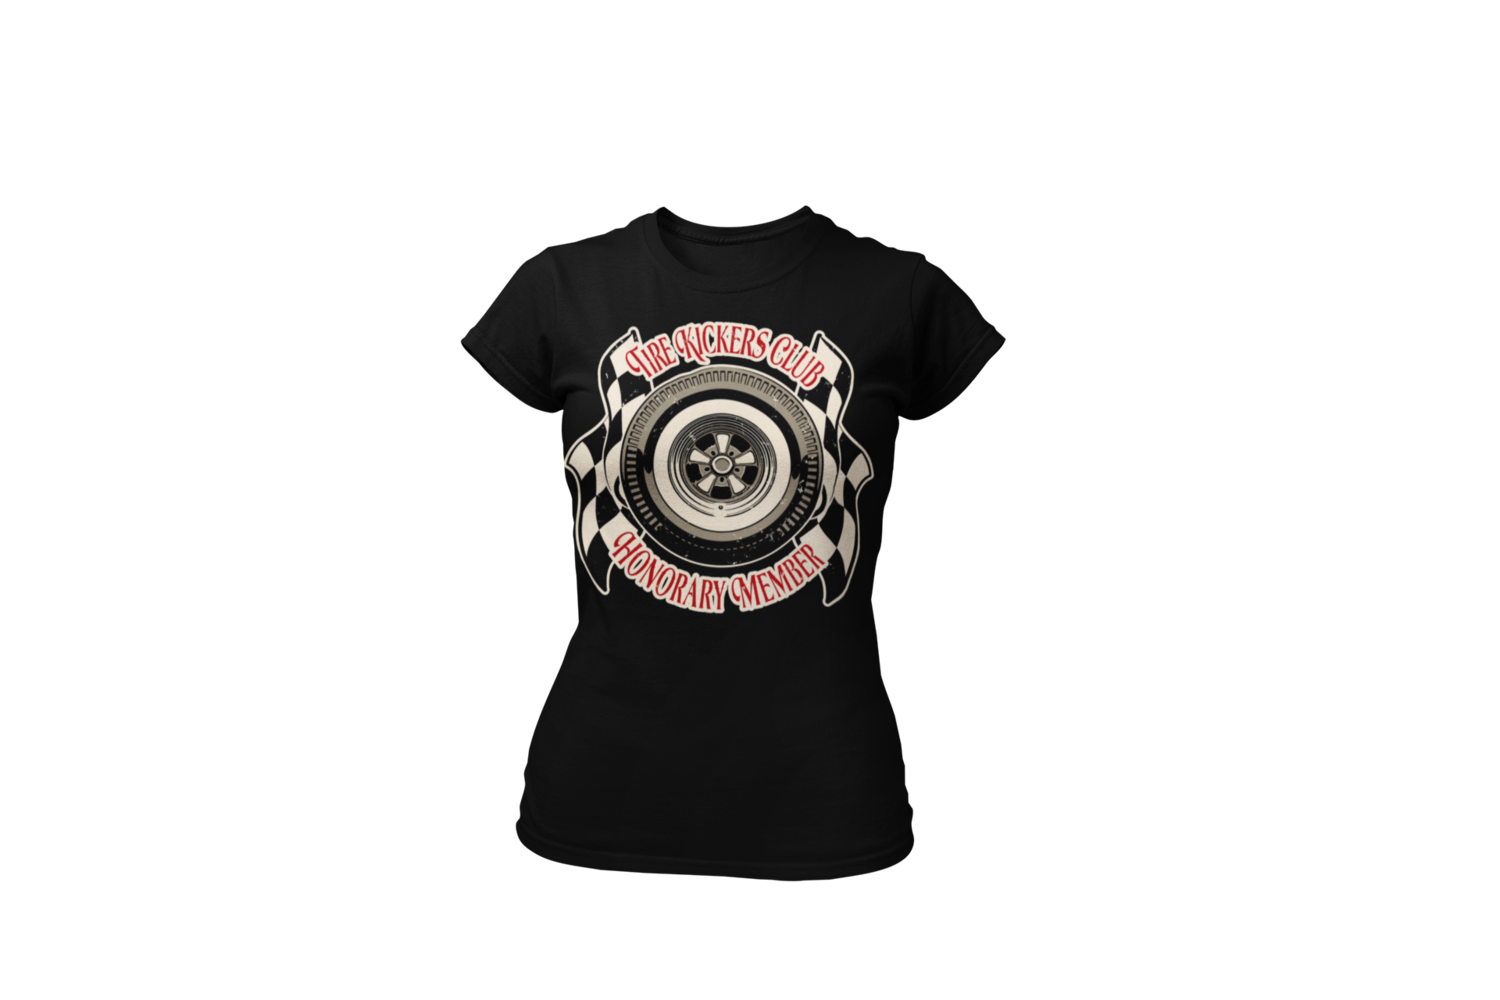 "TIRE KICKERS CLUB ""Monkey Wrench"" T-SHIRT WOMAN by Ger ""Dutch Courage"" Peters artwork"